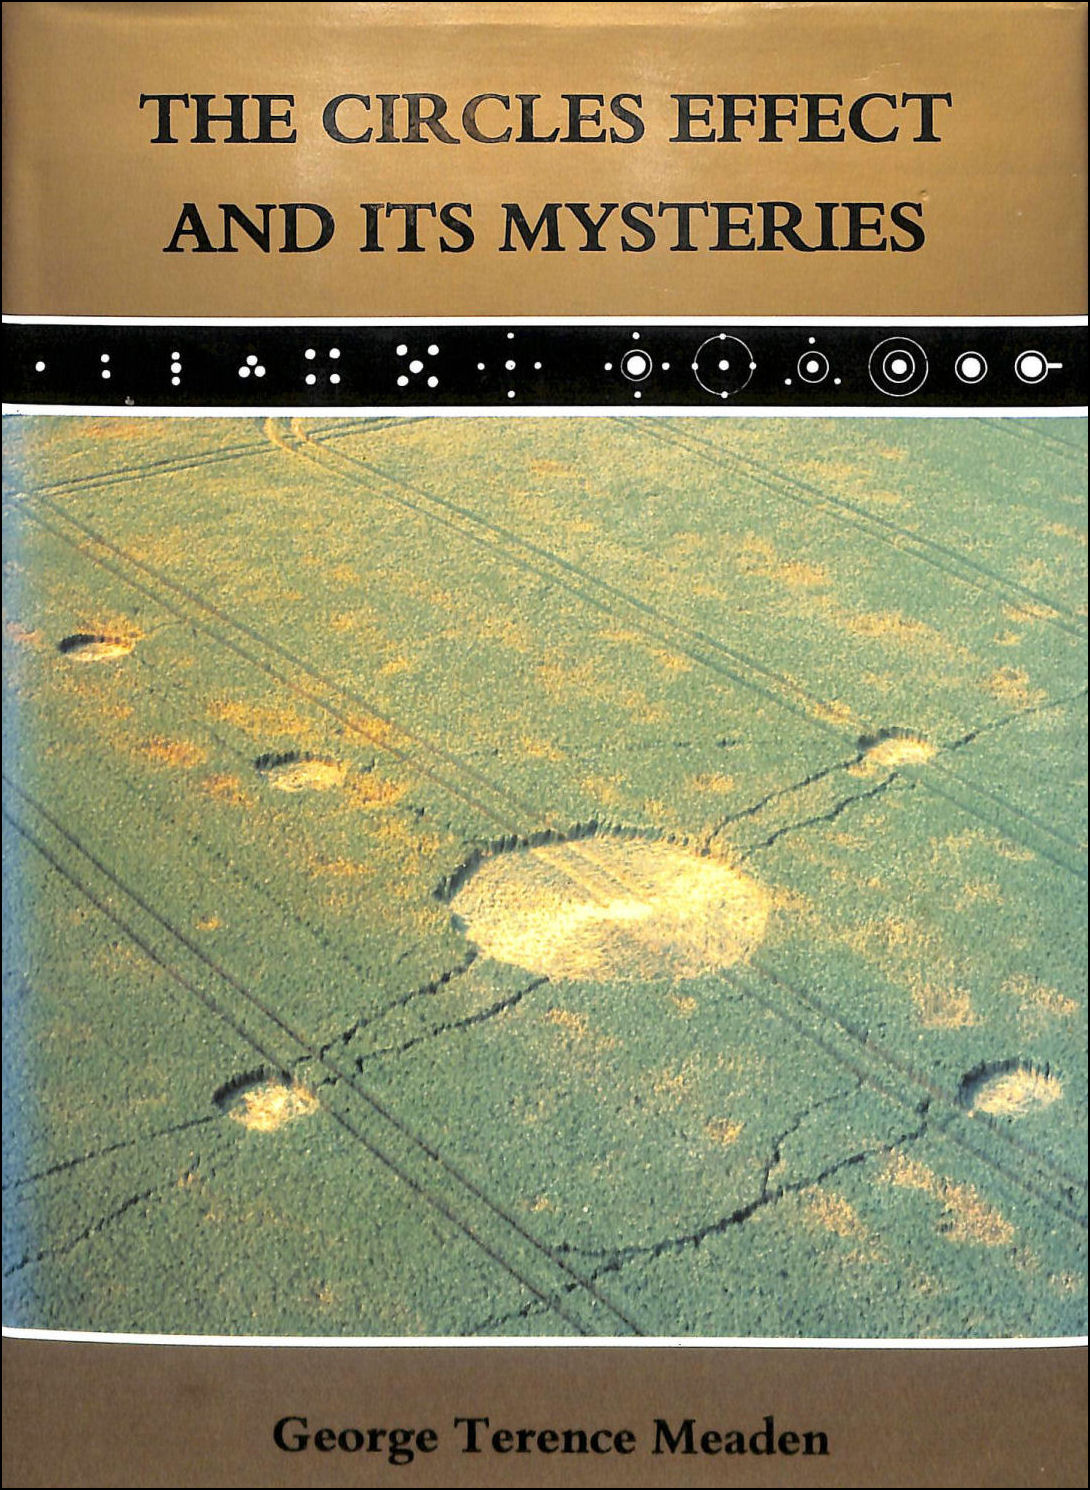 The Circles Effect and Its Mysteries, Meaden, George Terence